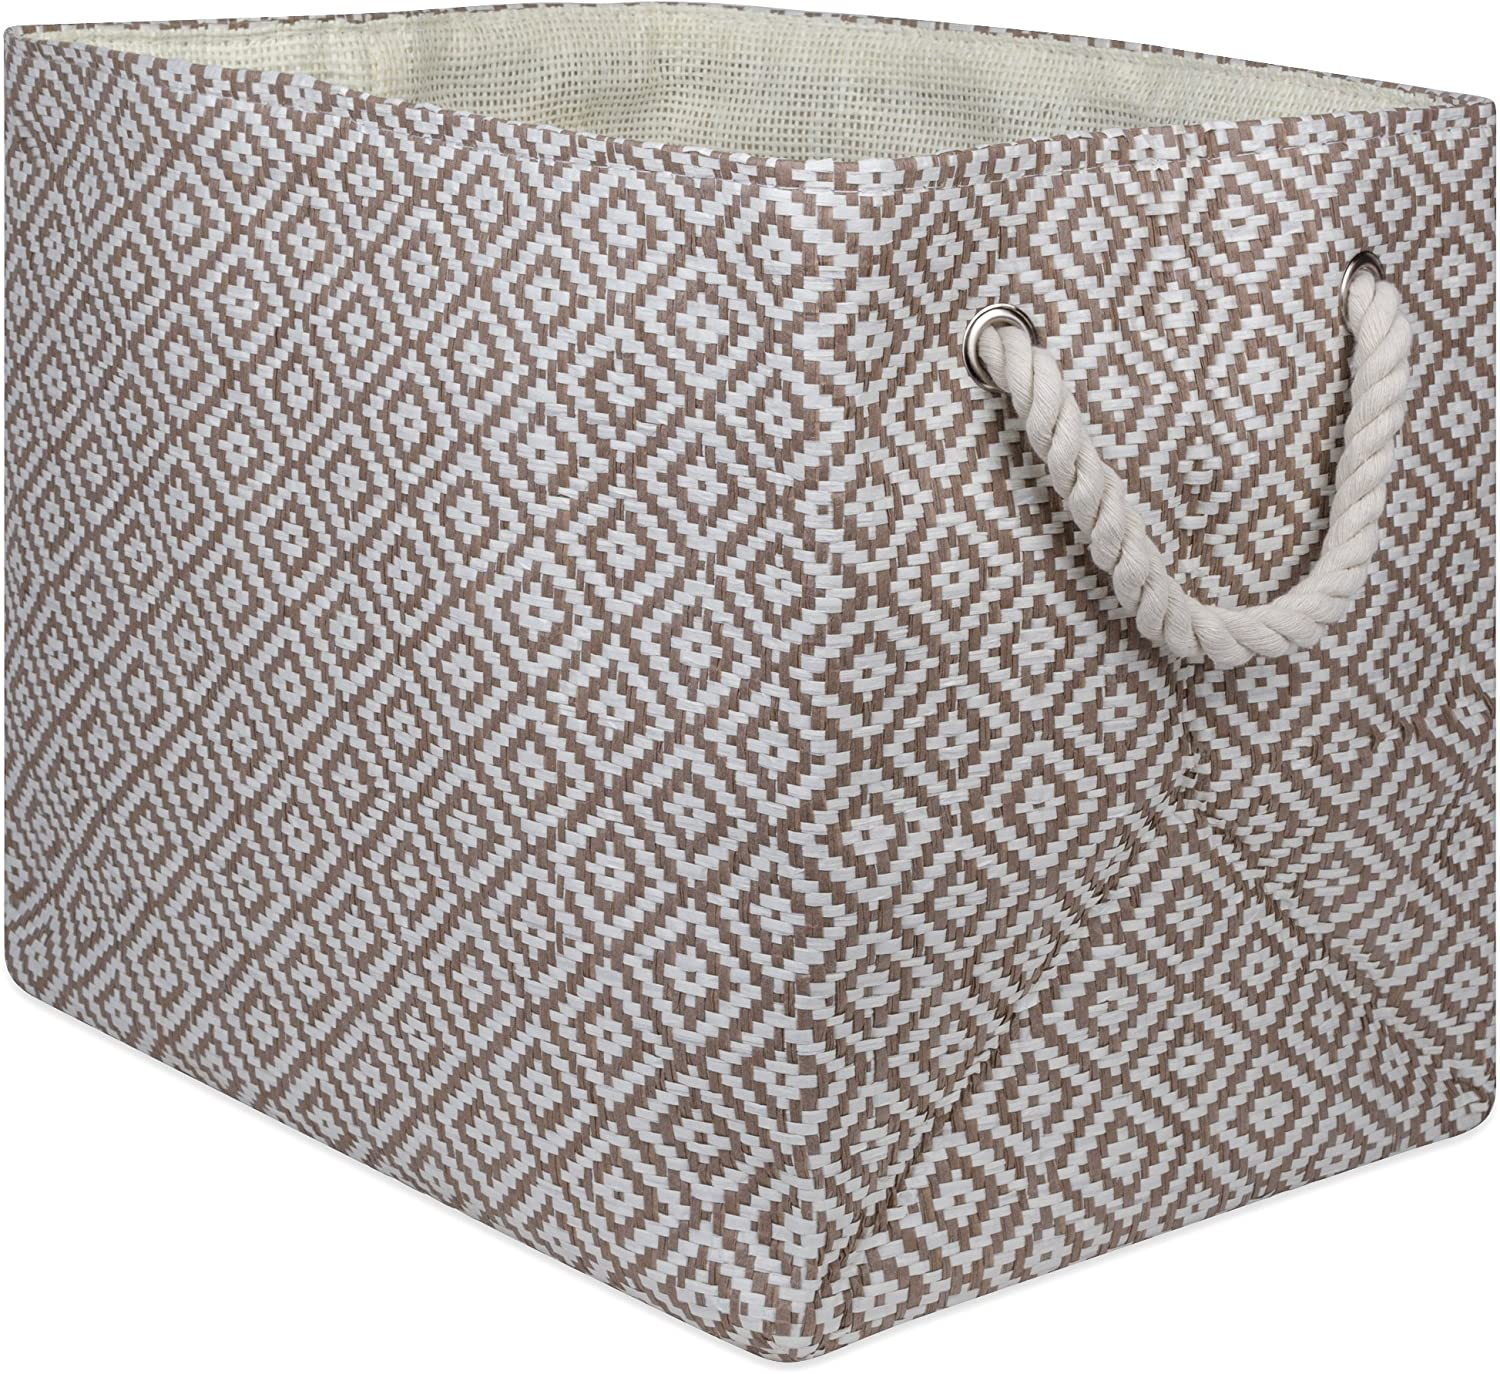 DII Geo Diamond Woven Paper Laundry Hamper or Storage Bin, Medium Rectangle, Stone